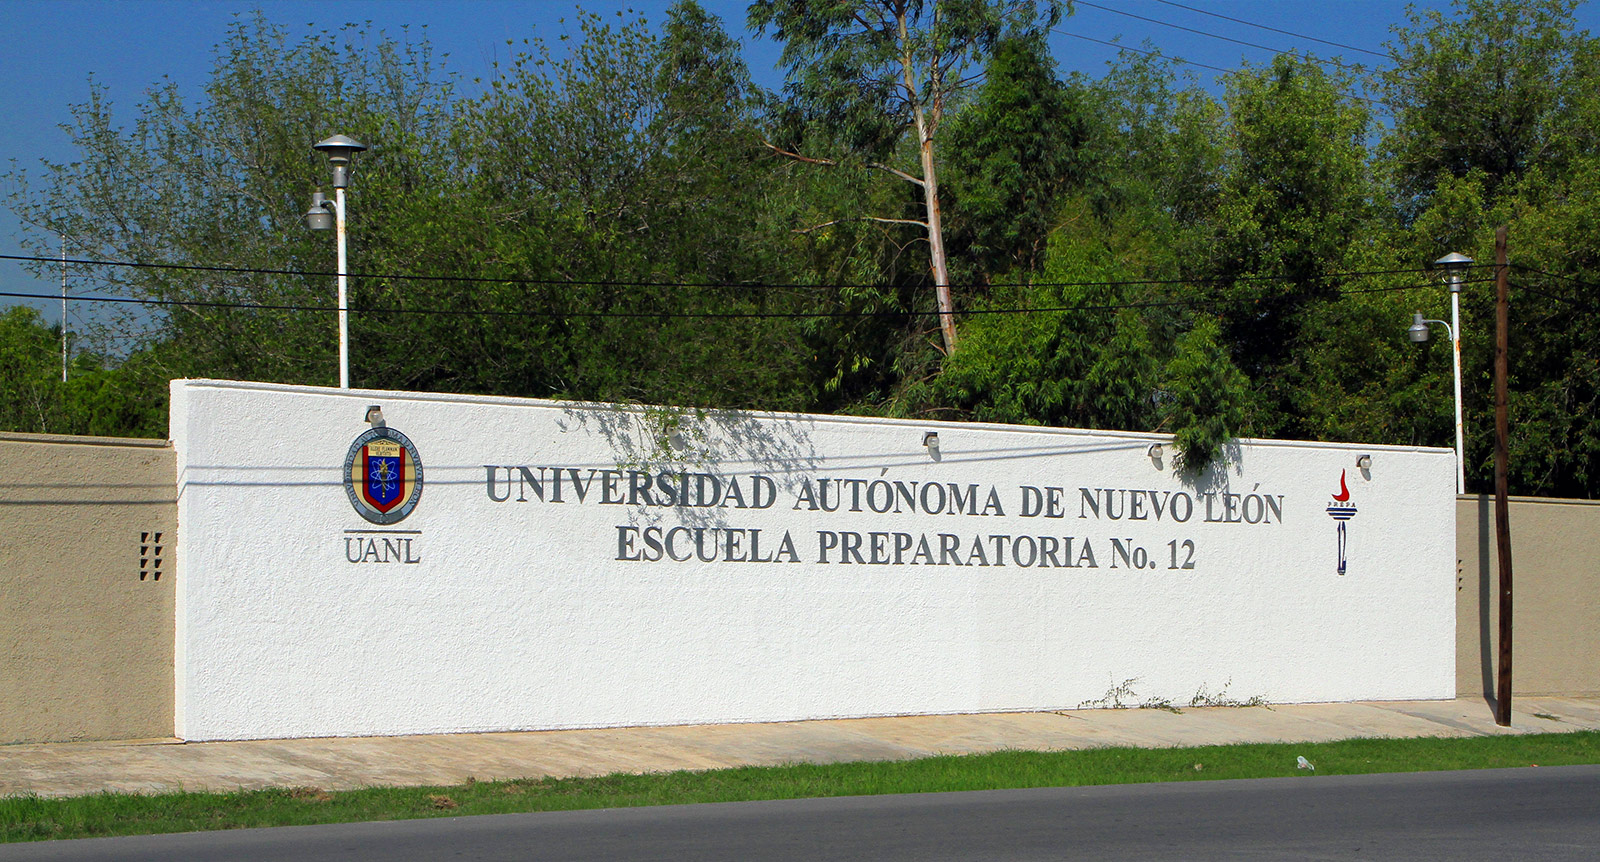 Escuela Preparatoria No. 12 Cadereyta